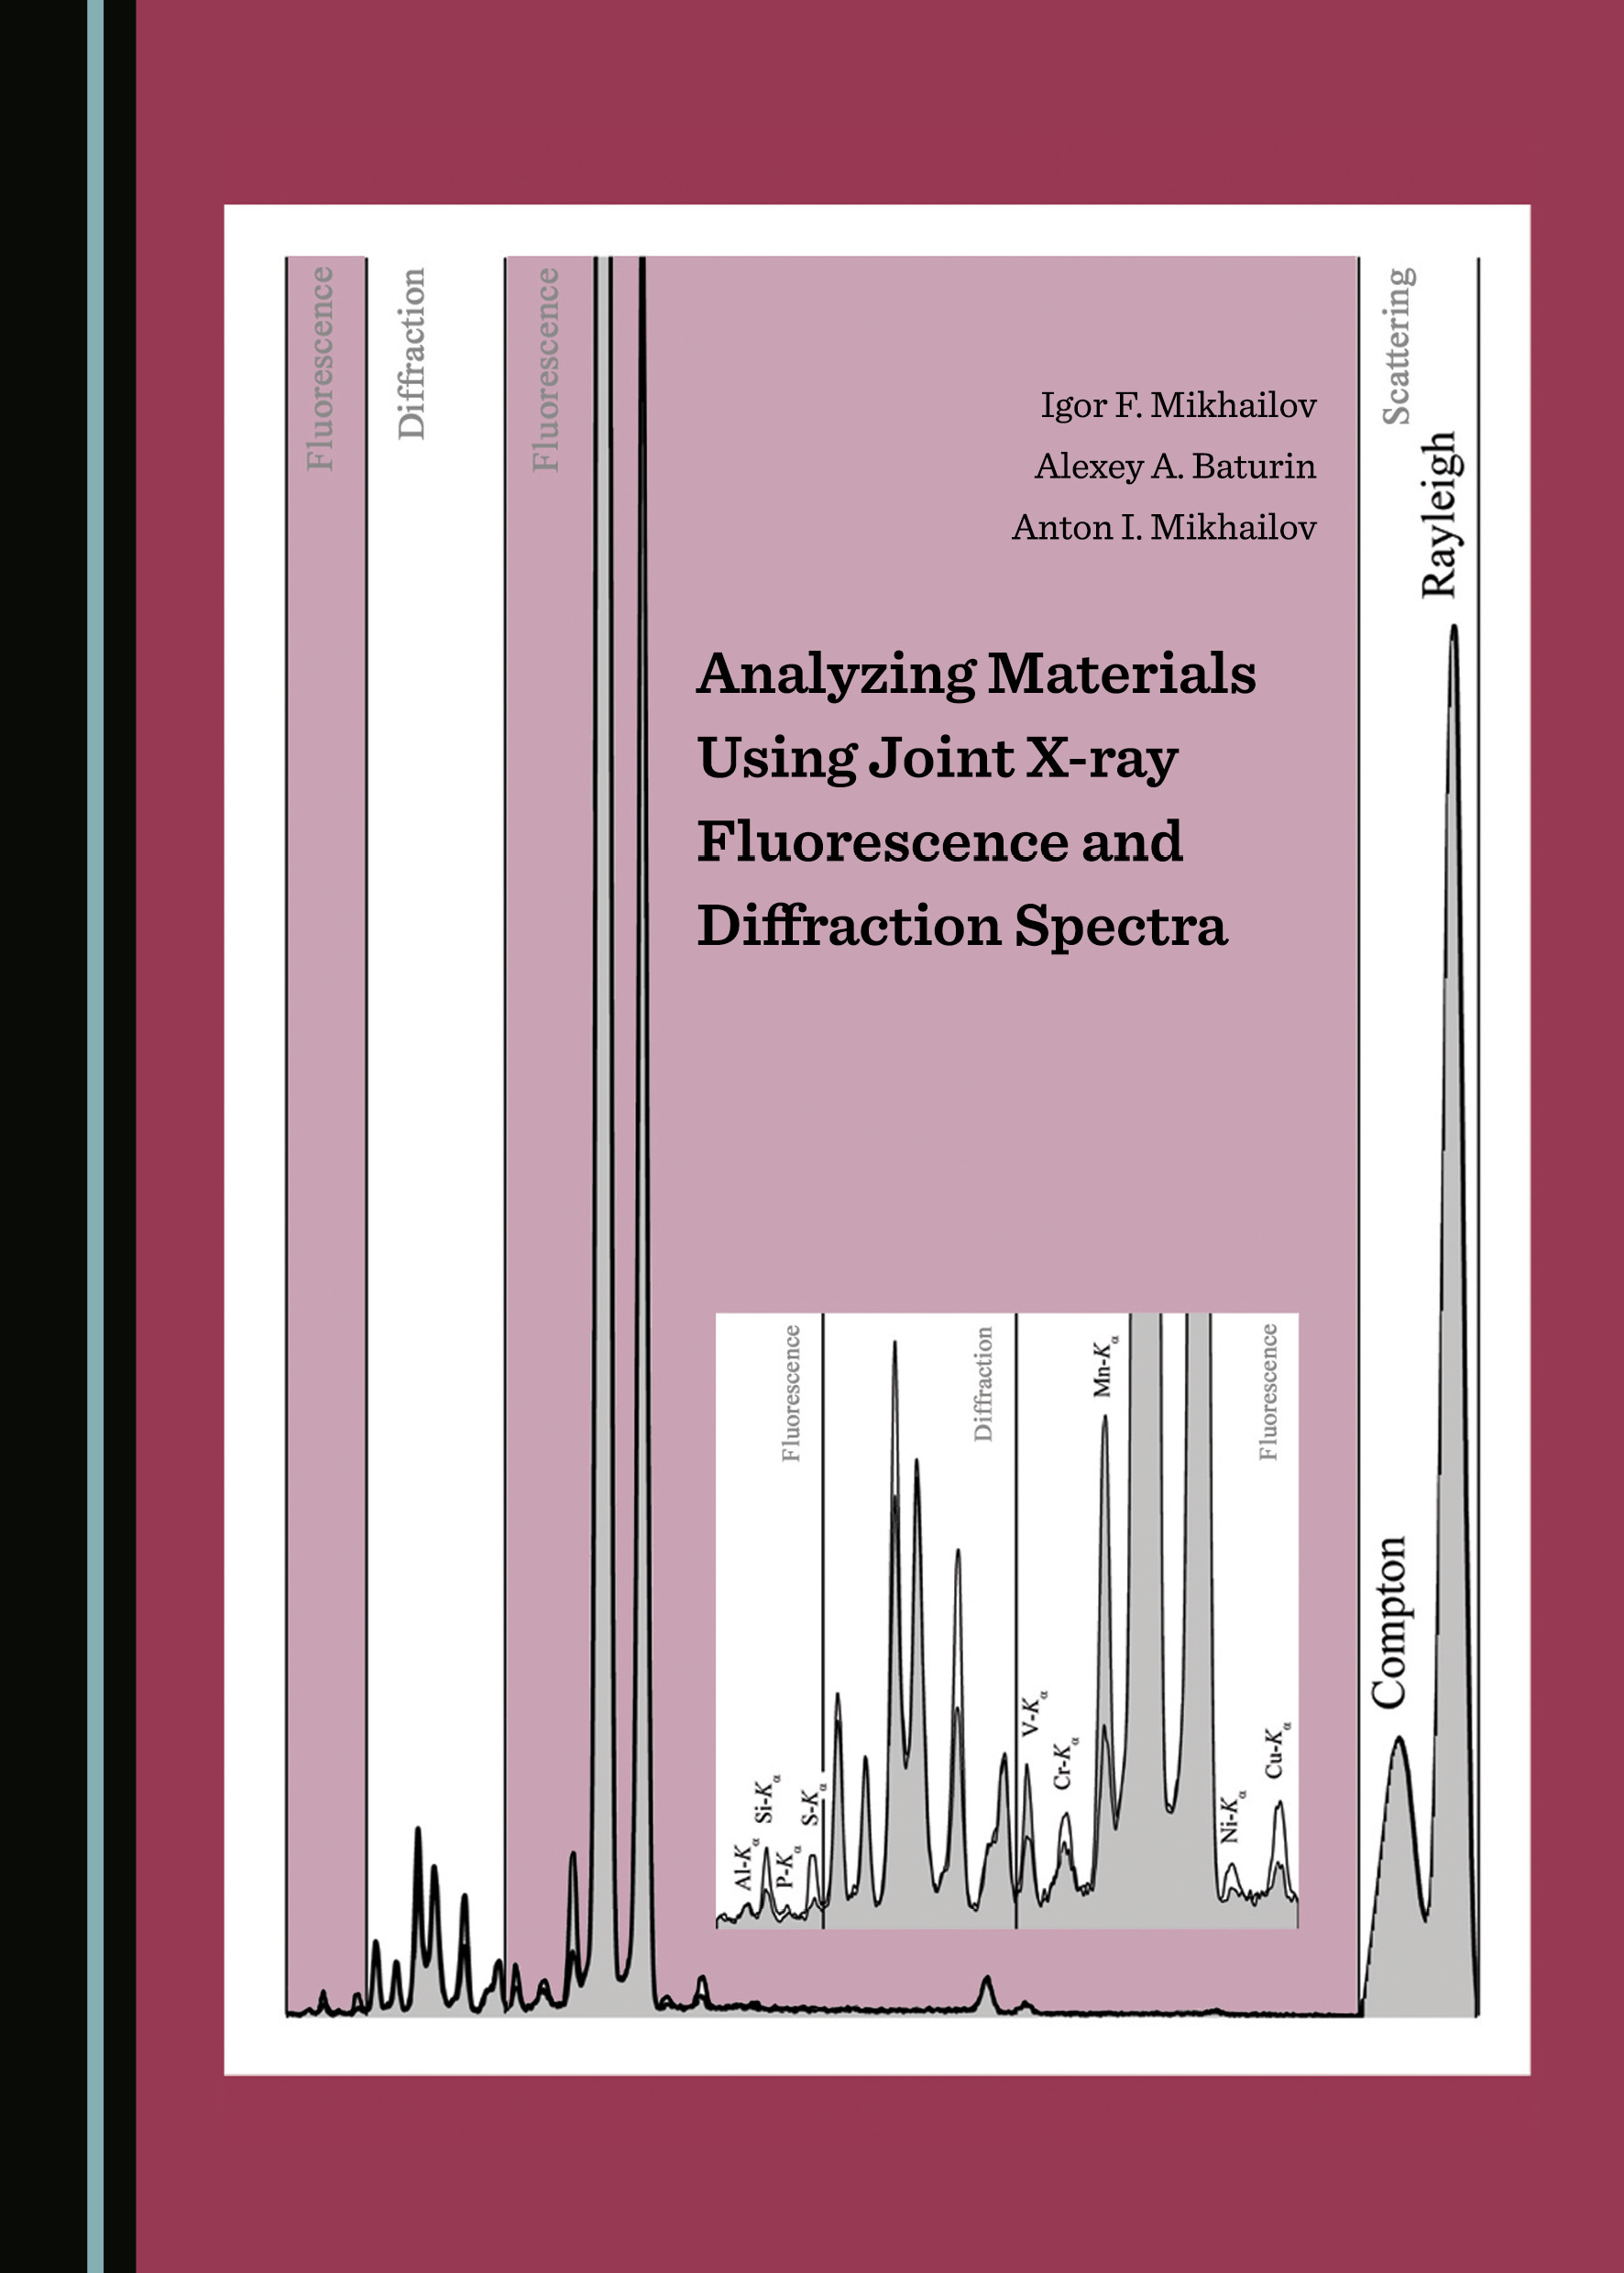 Analyzing Materials Using Joint X-ray Fluorescence and Diffraction Spectra